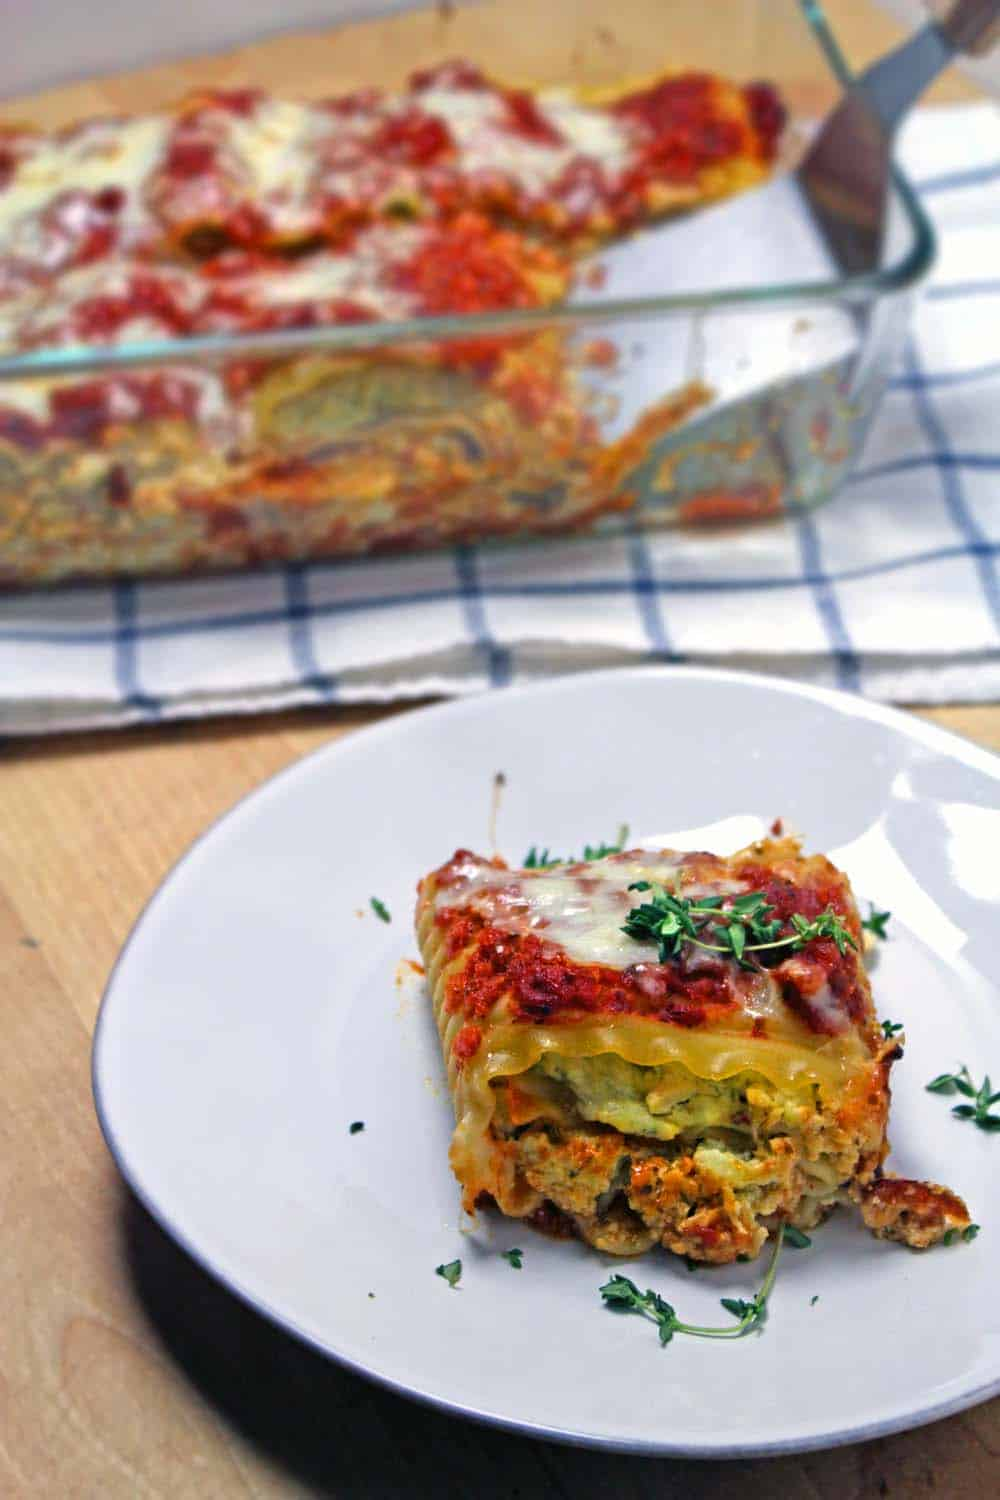 Pesto Chicken Lasagna Roll-ups | A delicious mixture of pesto, chicken, and ricotta cheese is spread on individual lasagna noodles, rolled, and topped with sauce and cheese for a perfectly portioned and hearty meal!